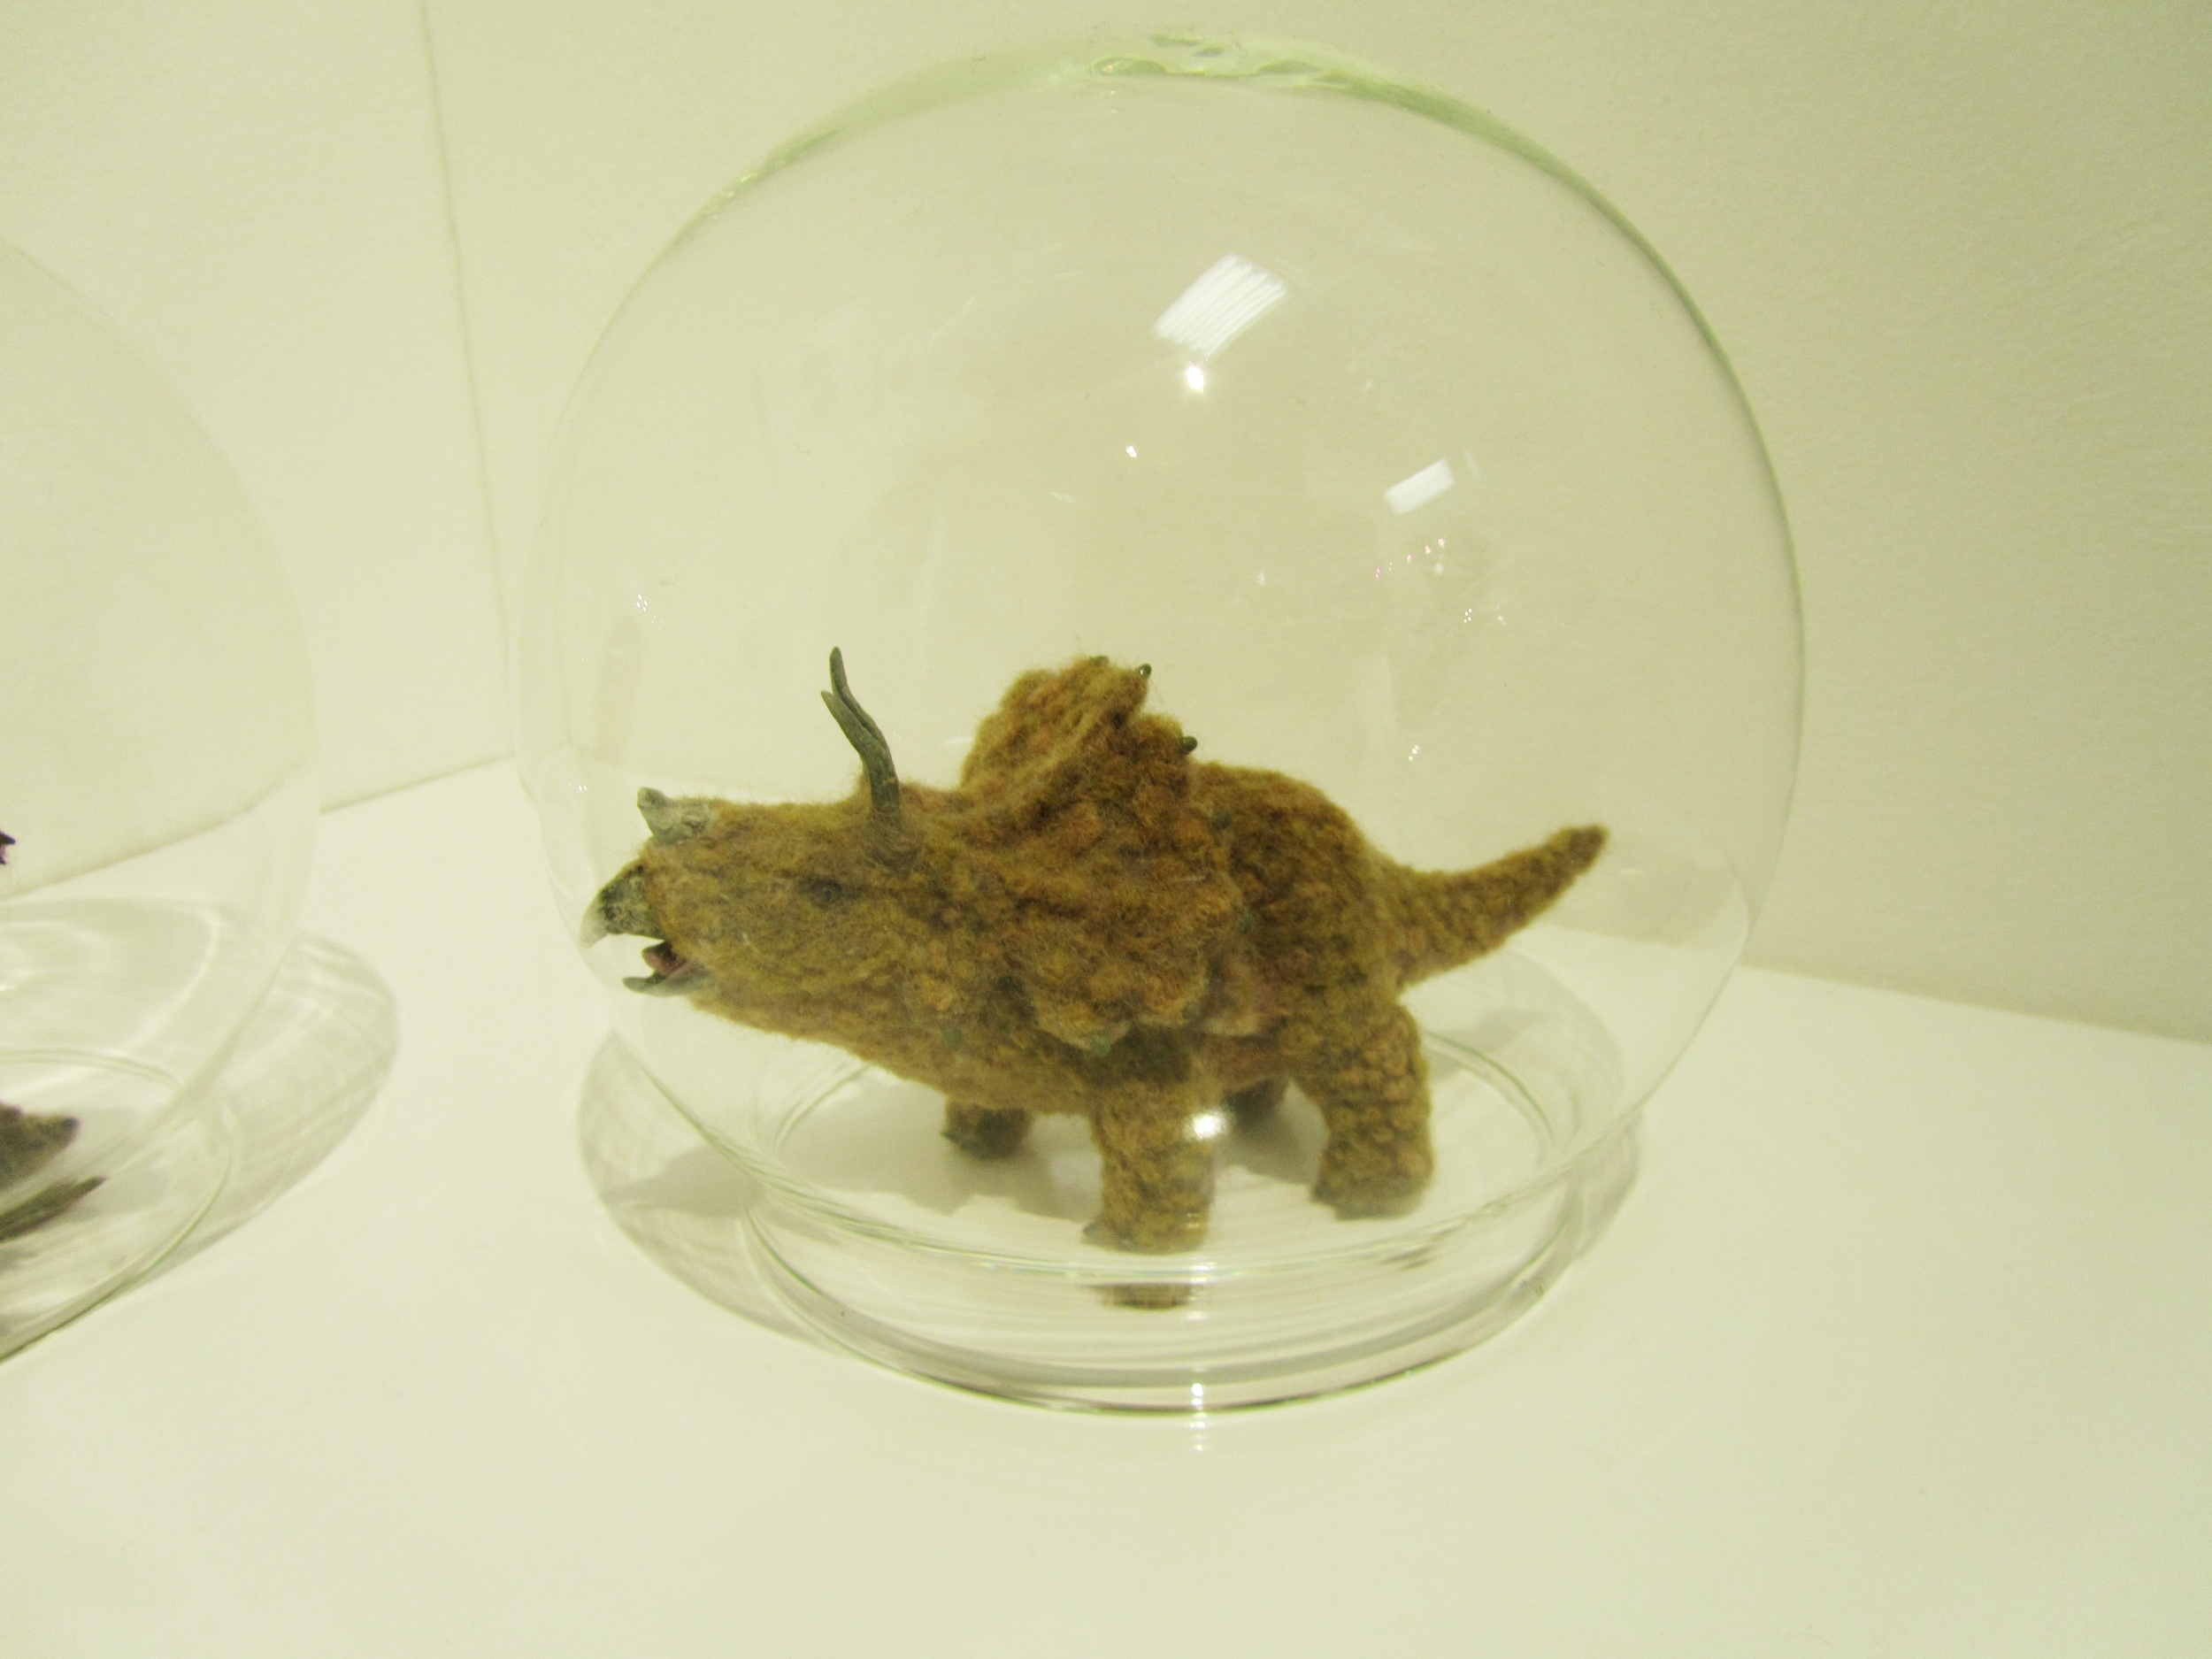 This little fellow looks preserved in a pre-historic environment as your own pet dinky dino in a bubble.